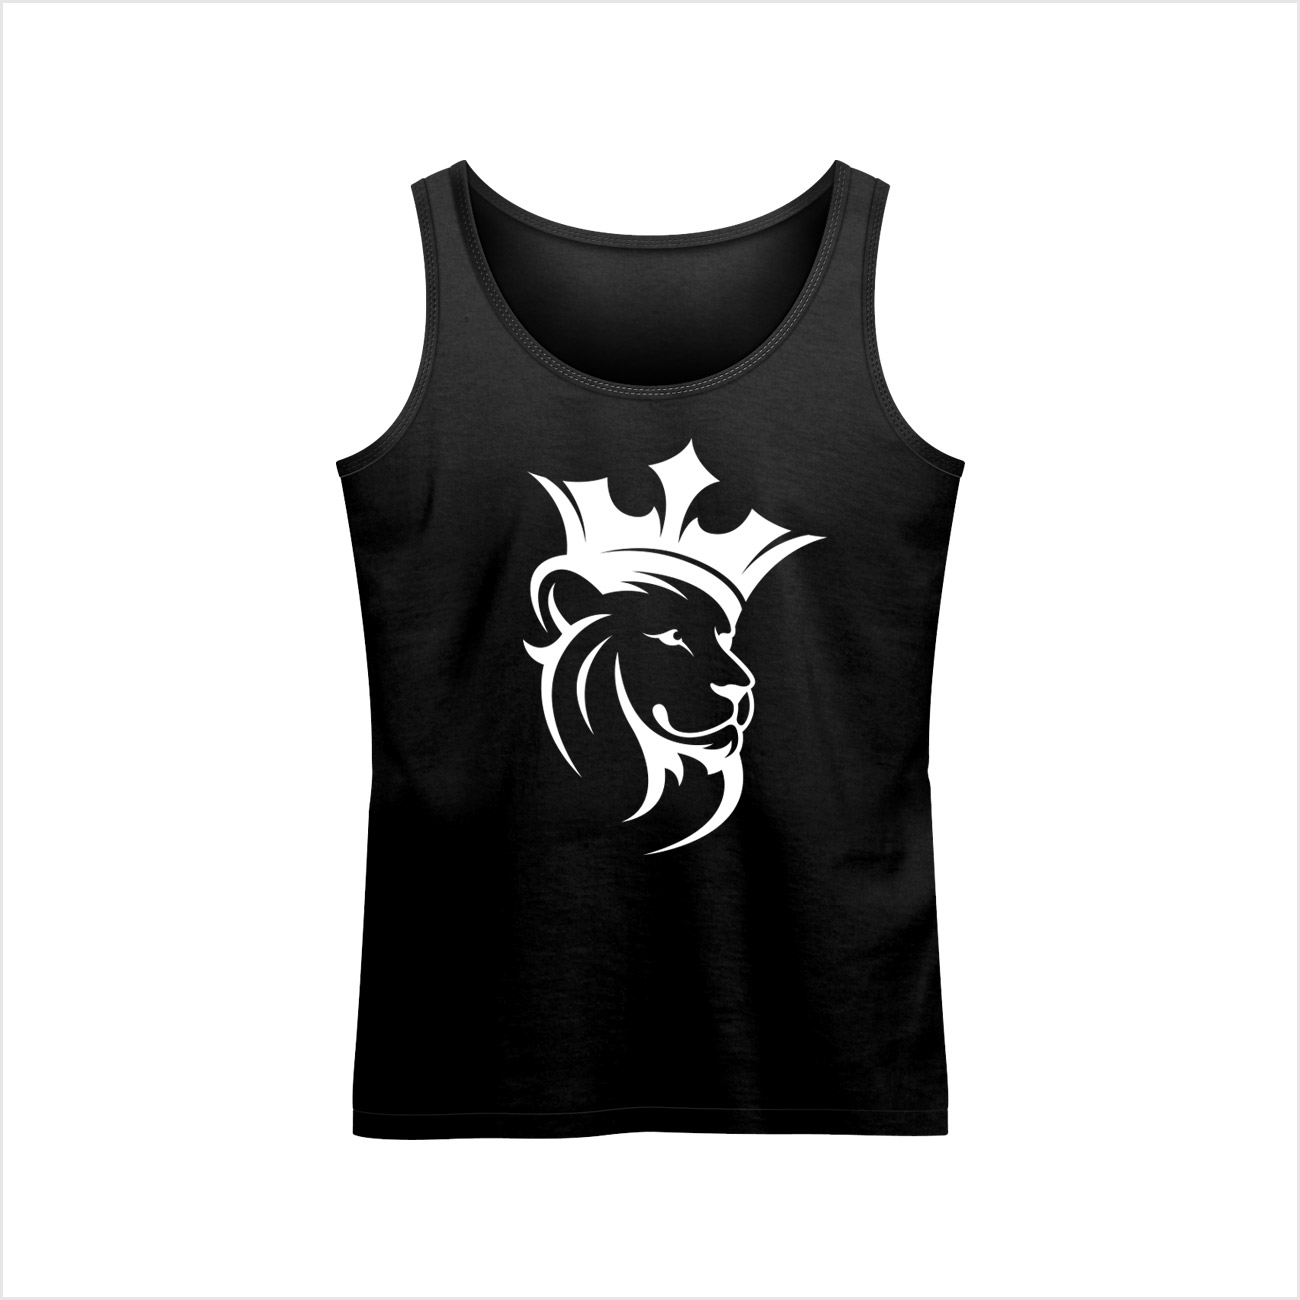 fat-punk-studio-team-lion-vest-top-black-01